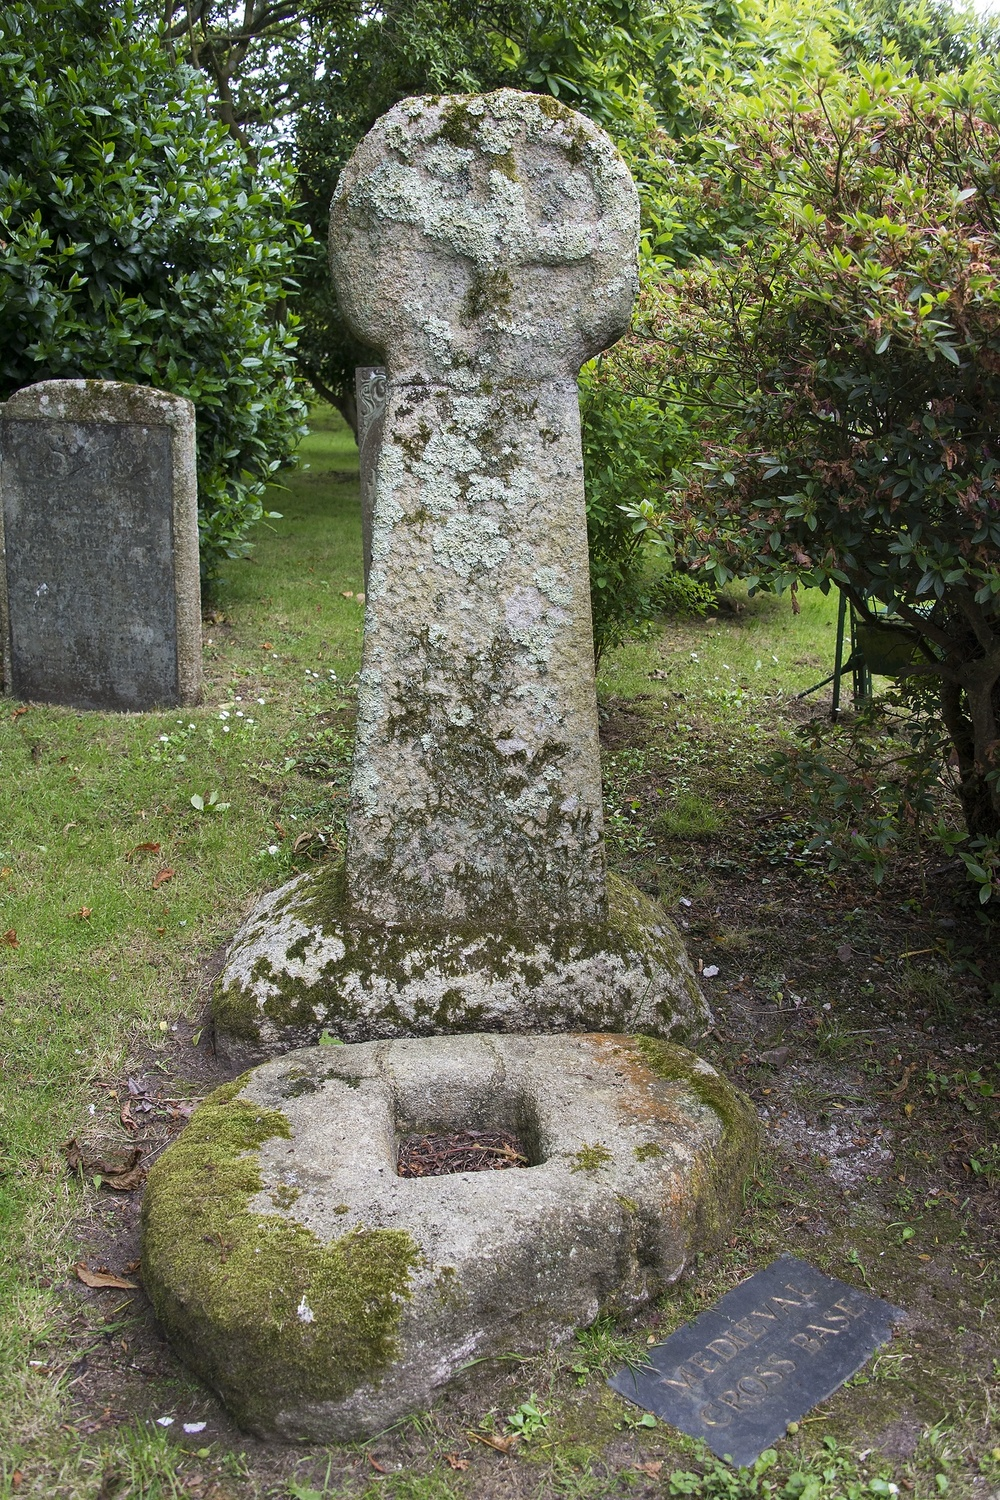 The ancient Celtic cross